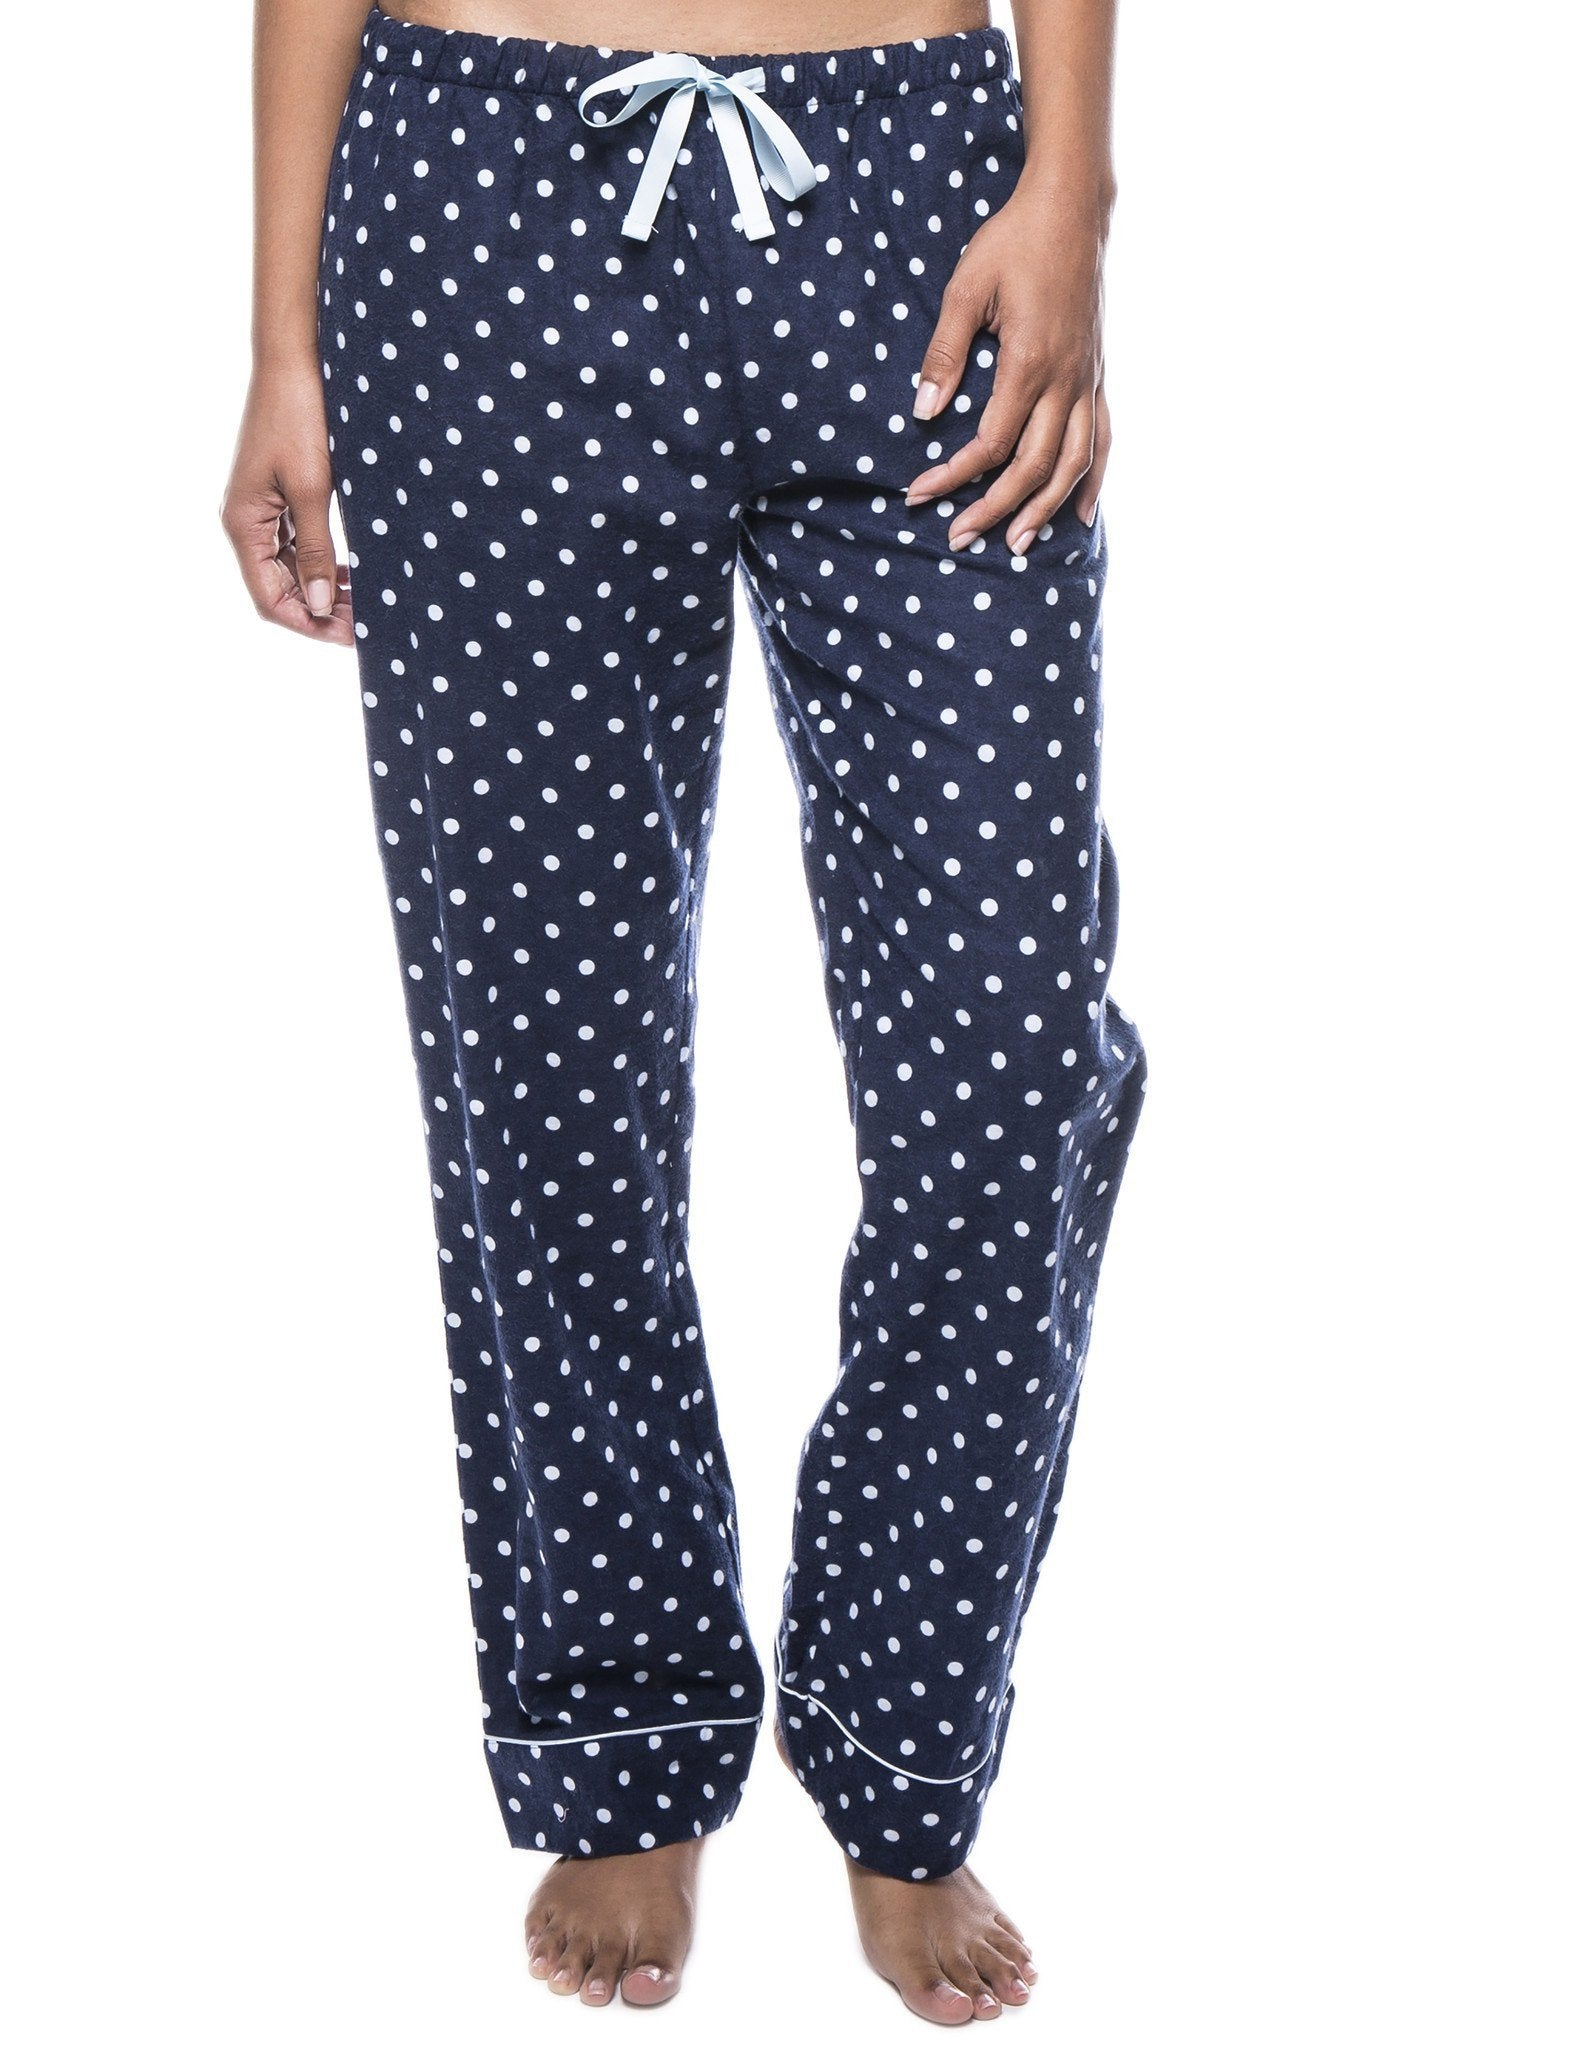 Womens 100% Cotton Flannel Lounge Pants - Dots Diva Dark Blue/Light Blue